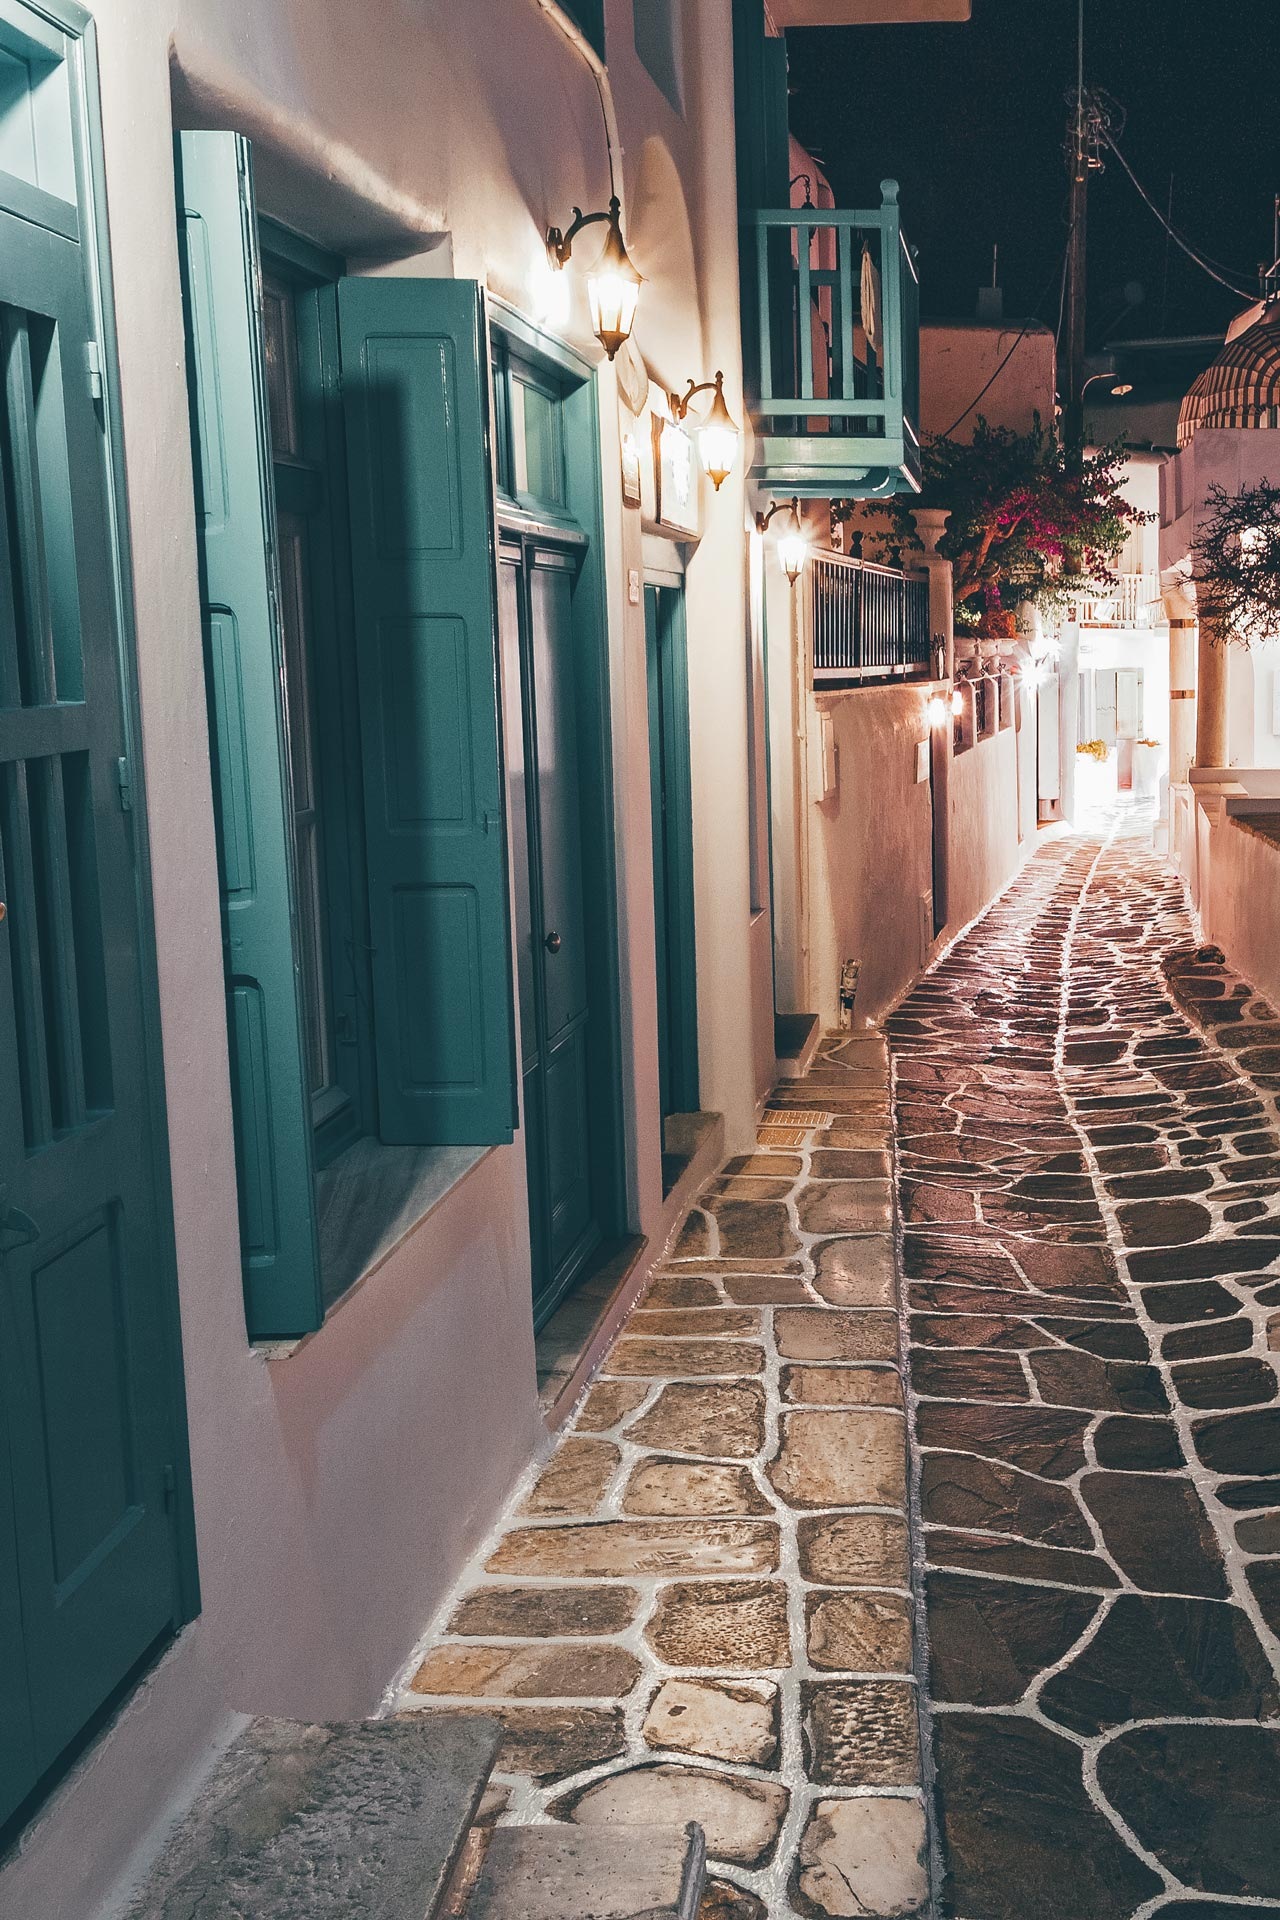 Strolling around Mykonos Hora, during the endless nights